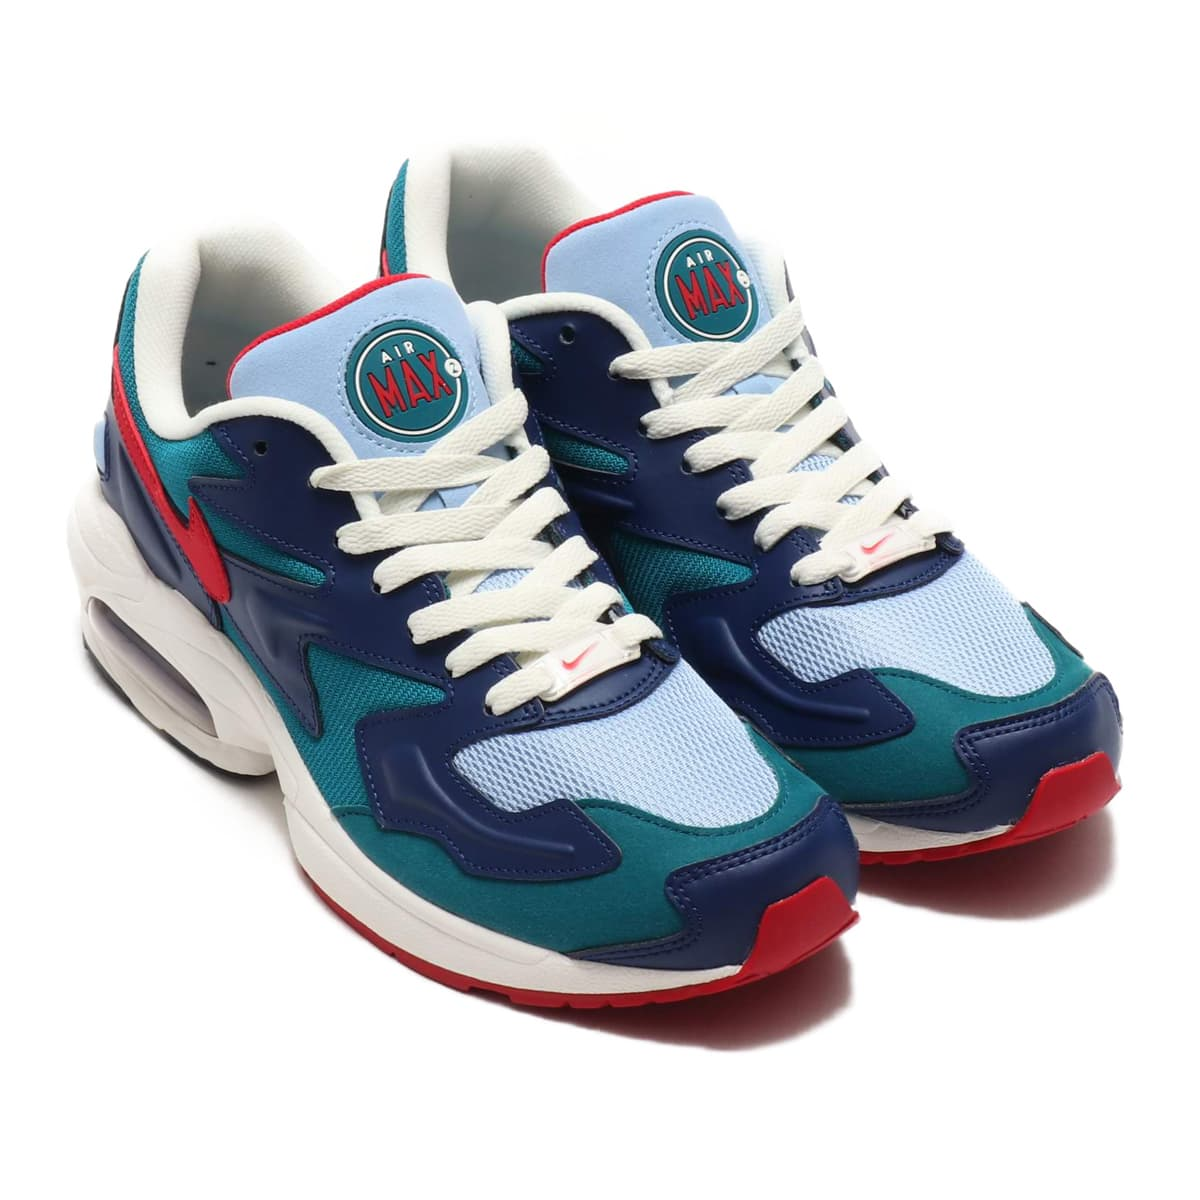 NIKE AIR MAX2 LIGHT GEODE TEAL/GYM RED-SAIL-BLUE VOID 19FA-S_photo_large